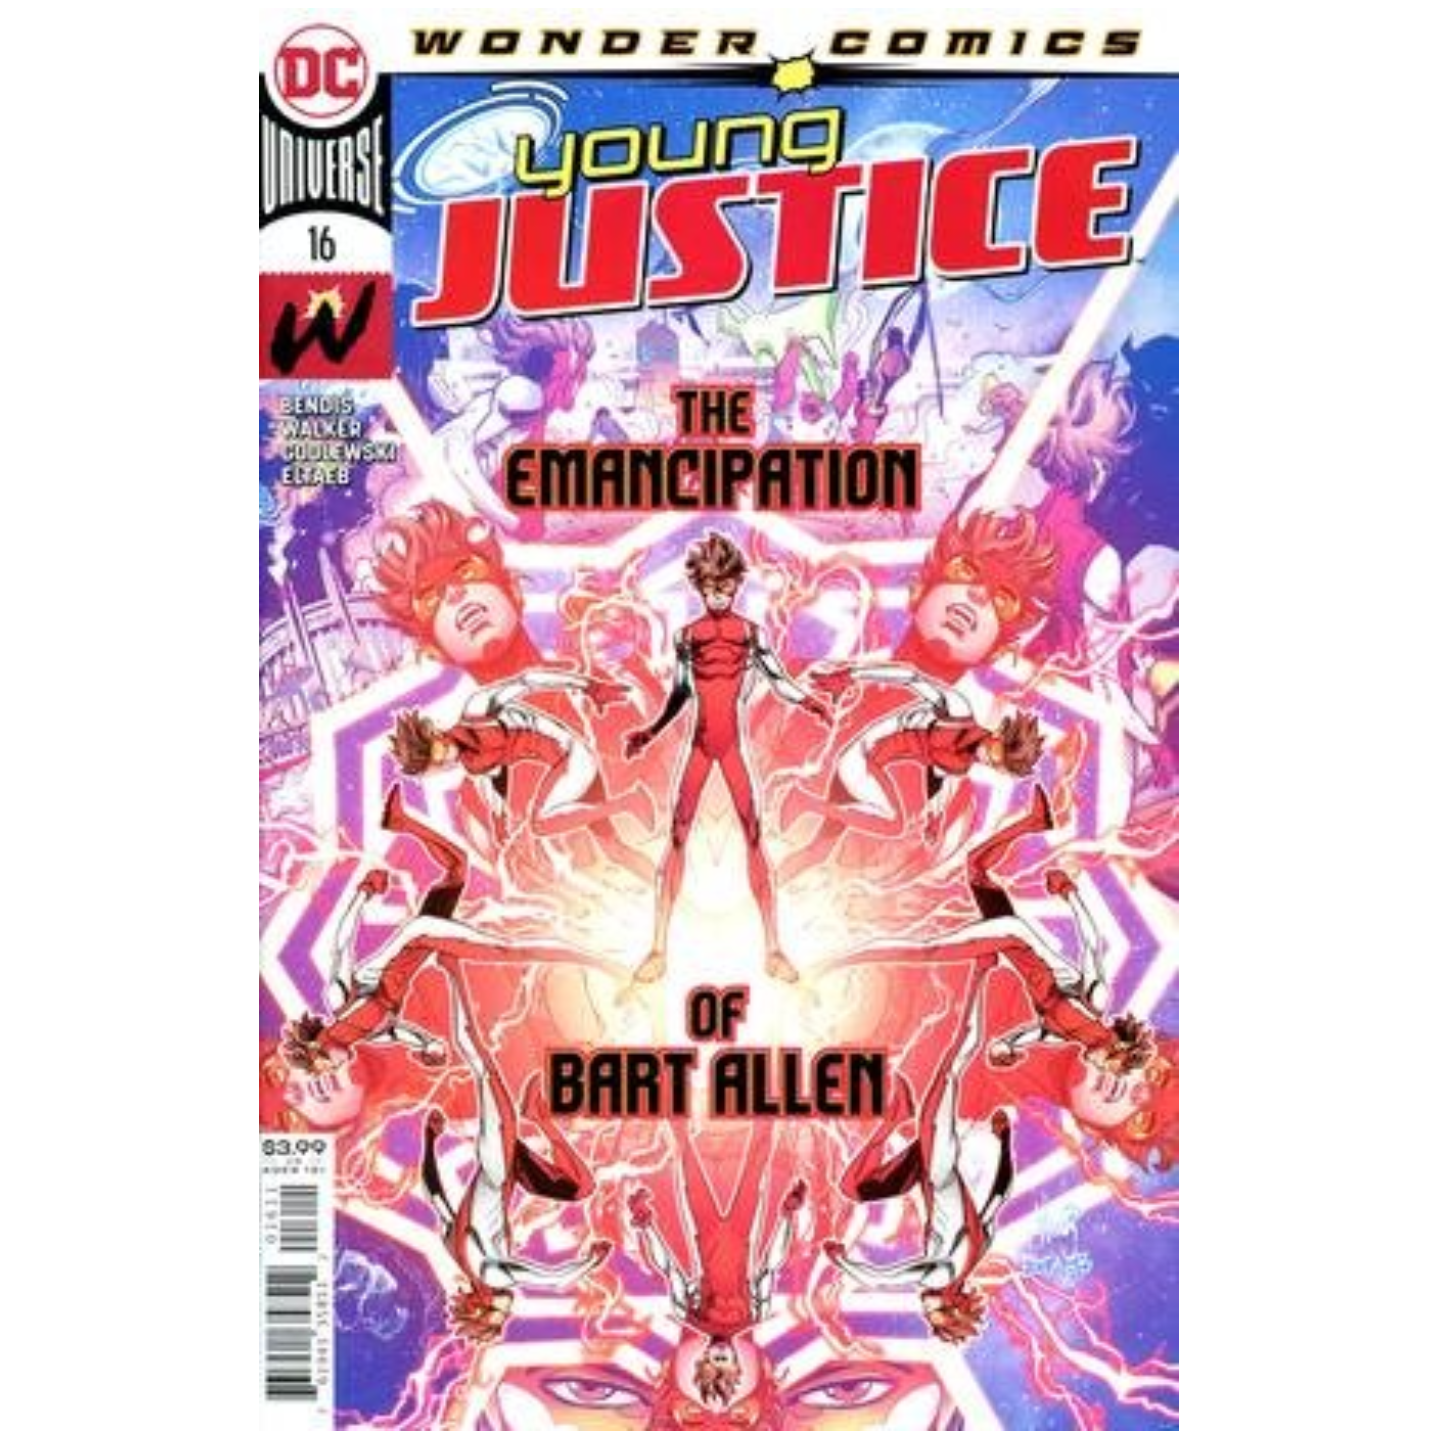 YOUNG JUSTICE #16 CVR A JOHN TIMMS